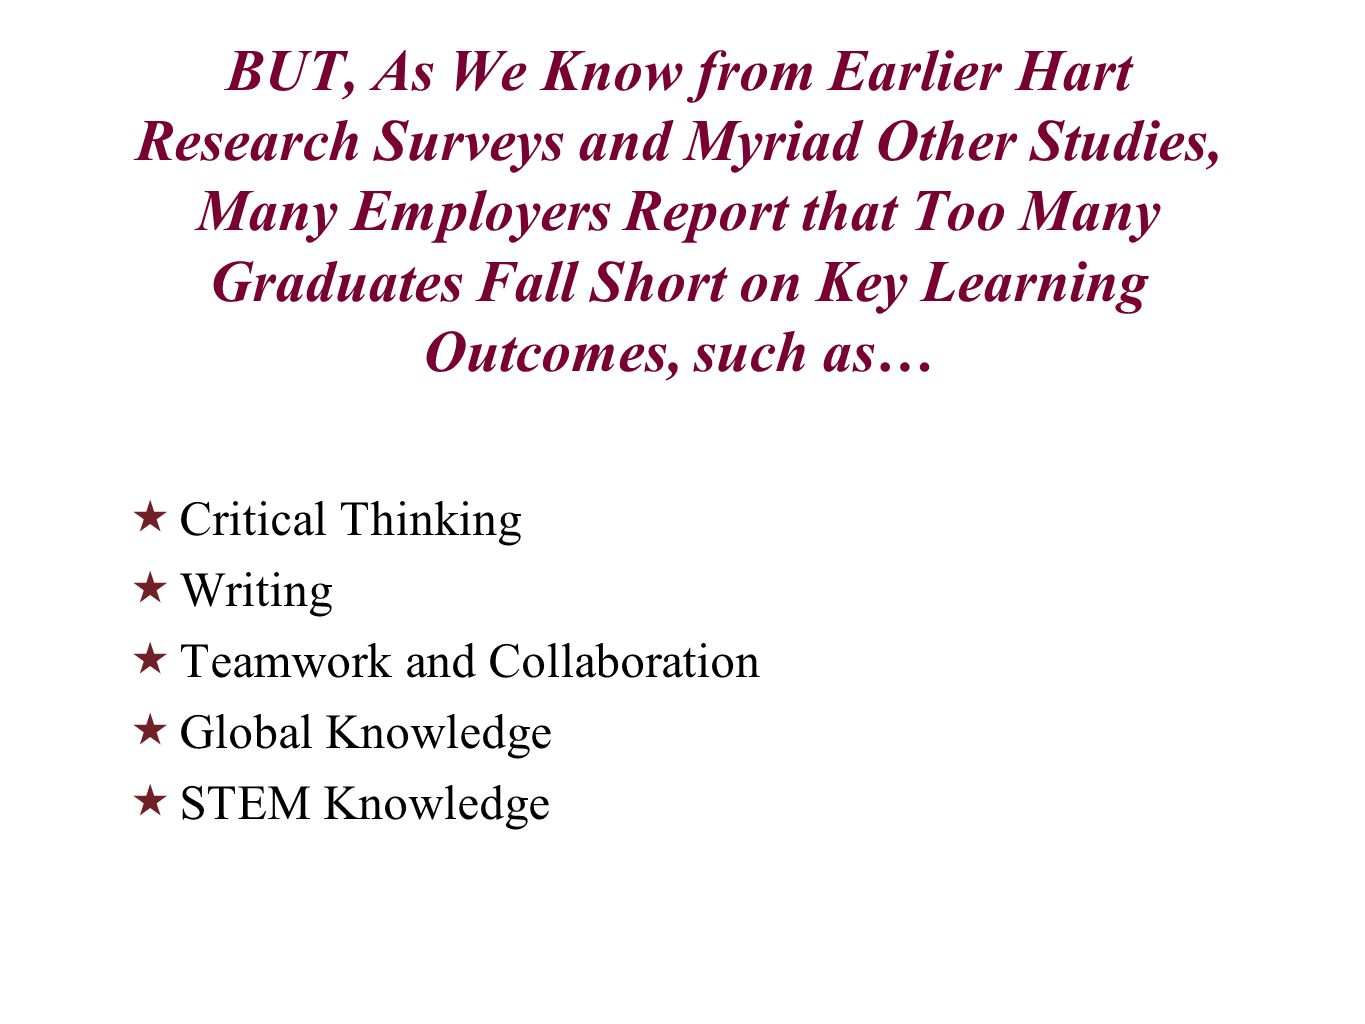 BUT, As We Know from Earlier Hart Research Surveys and Myriad Other Studies, Many Employers Report that Too Many Graduates Fall Short on Key Learning Outcomes, such as…